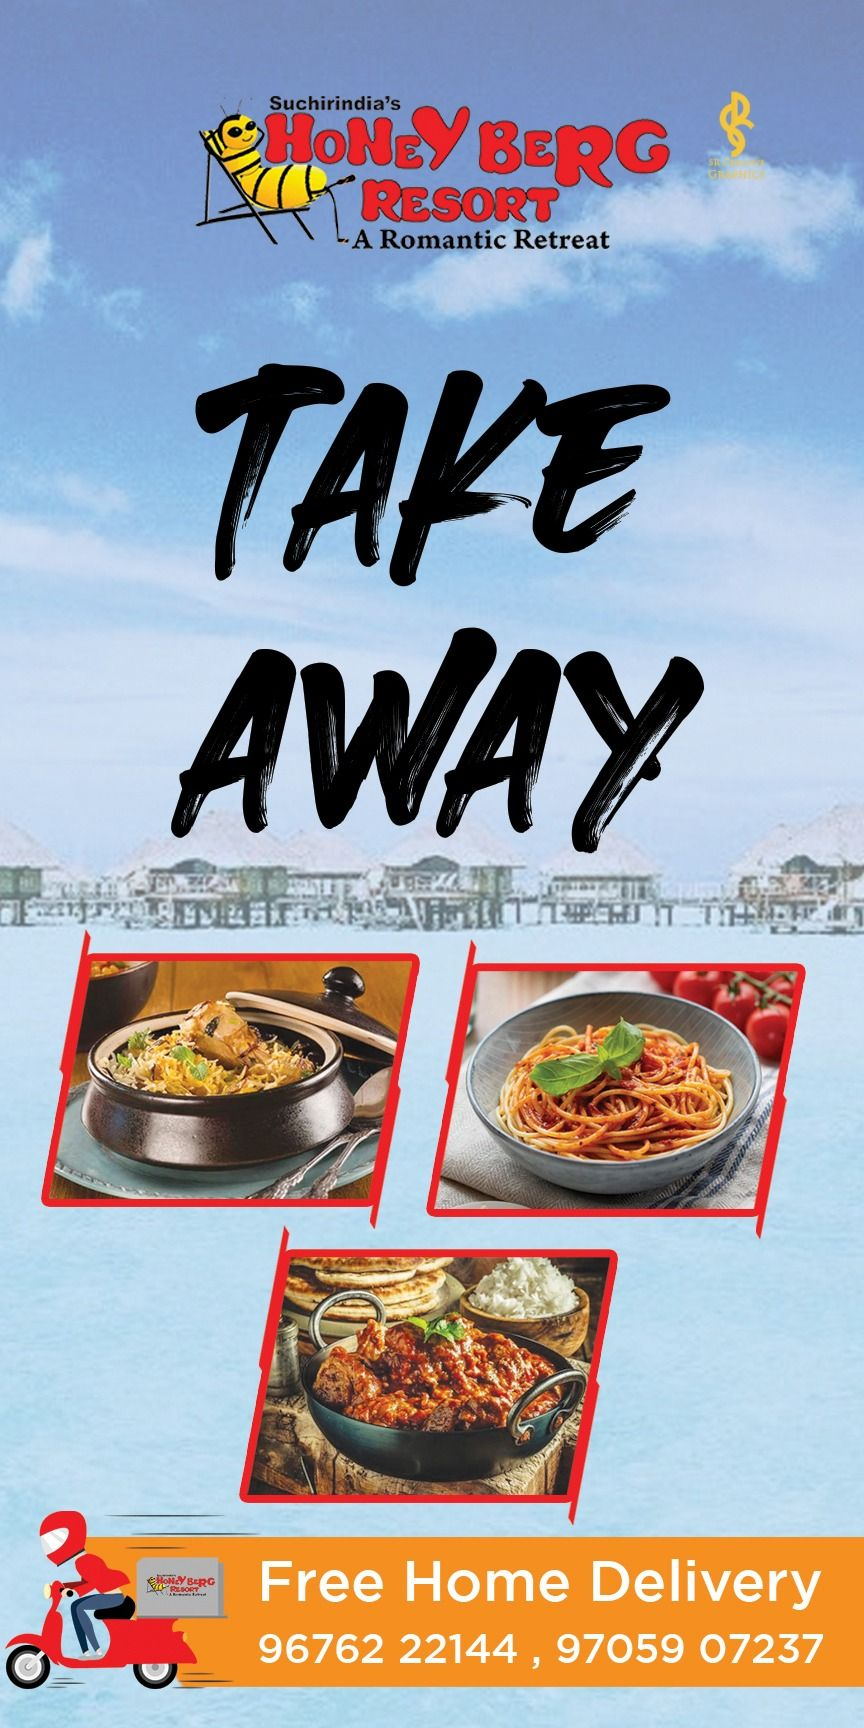 Take Away Food Standee In 2020 Food Delivery Restaurant Design Romantic Retreat